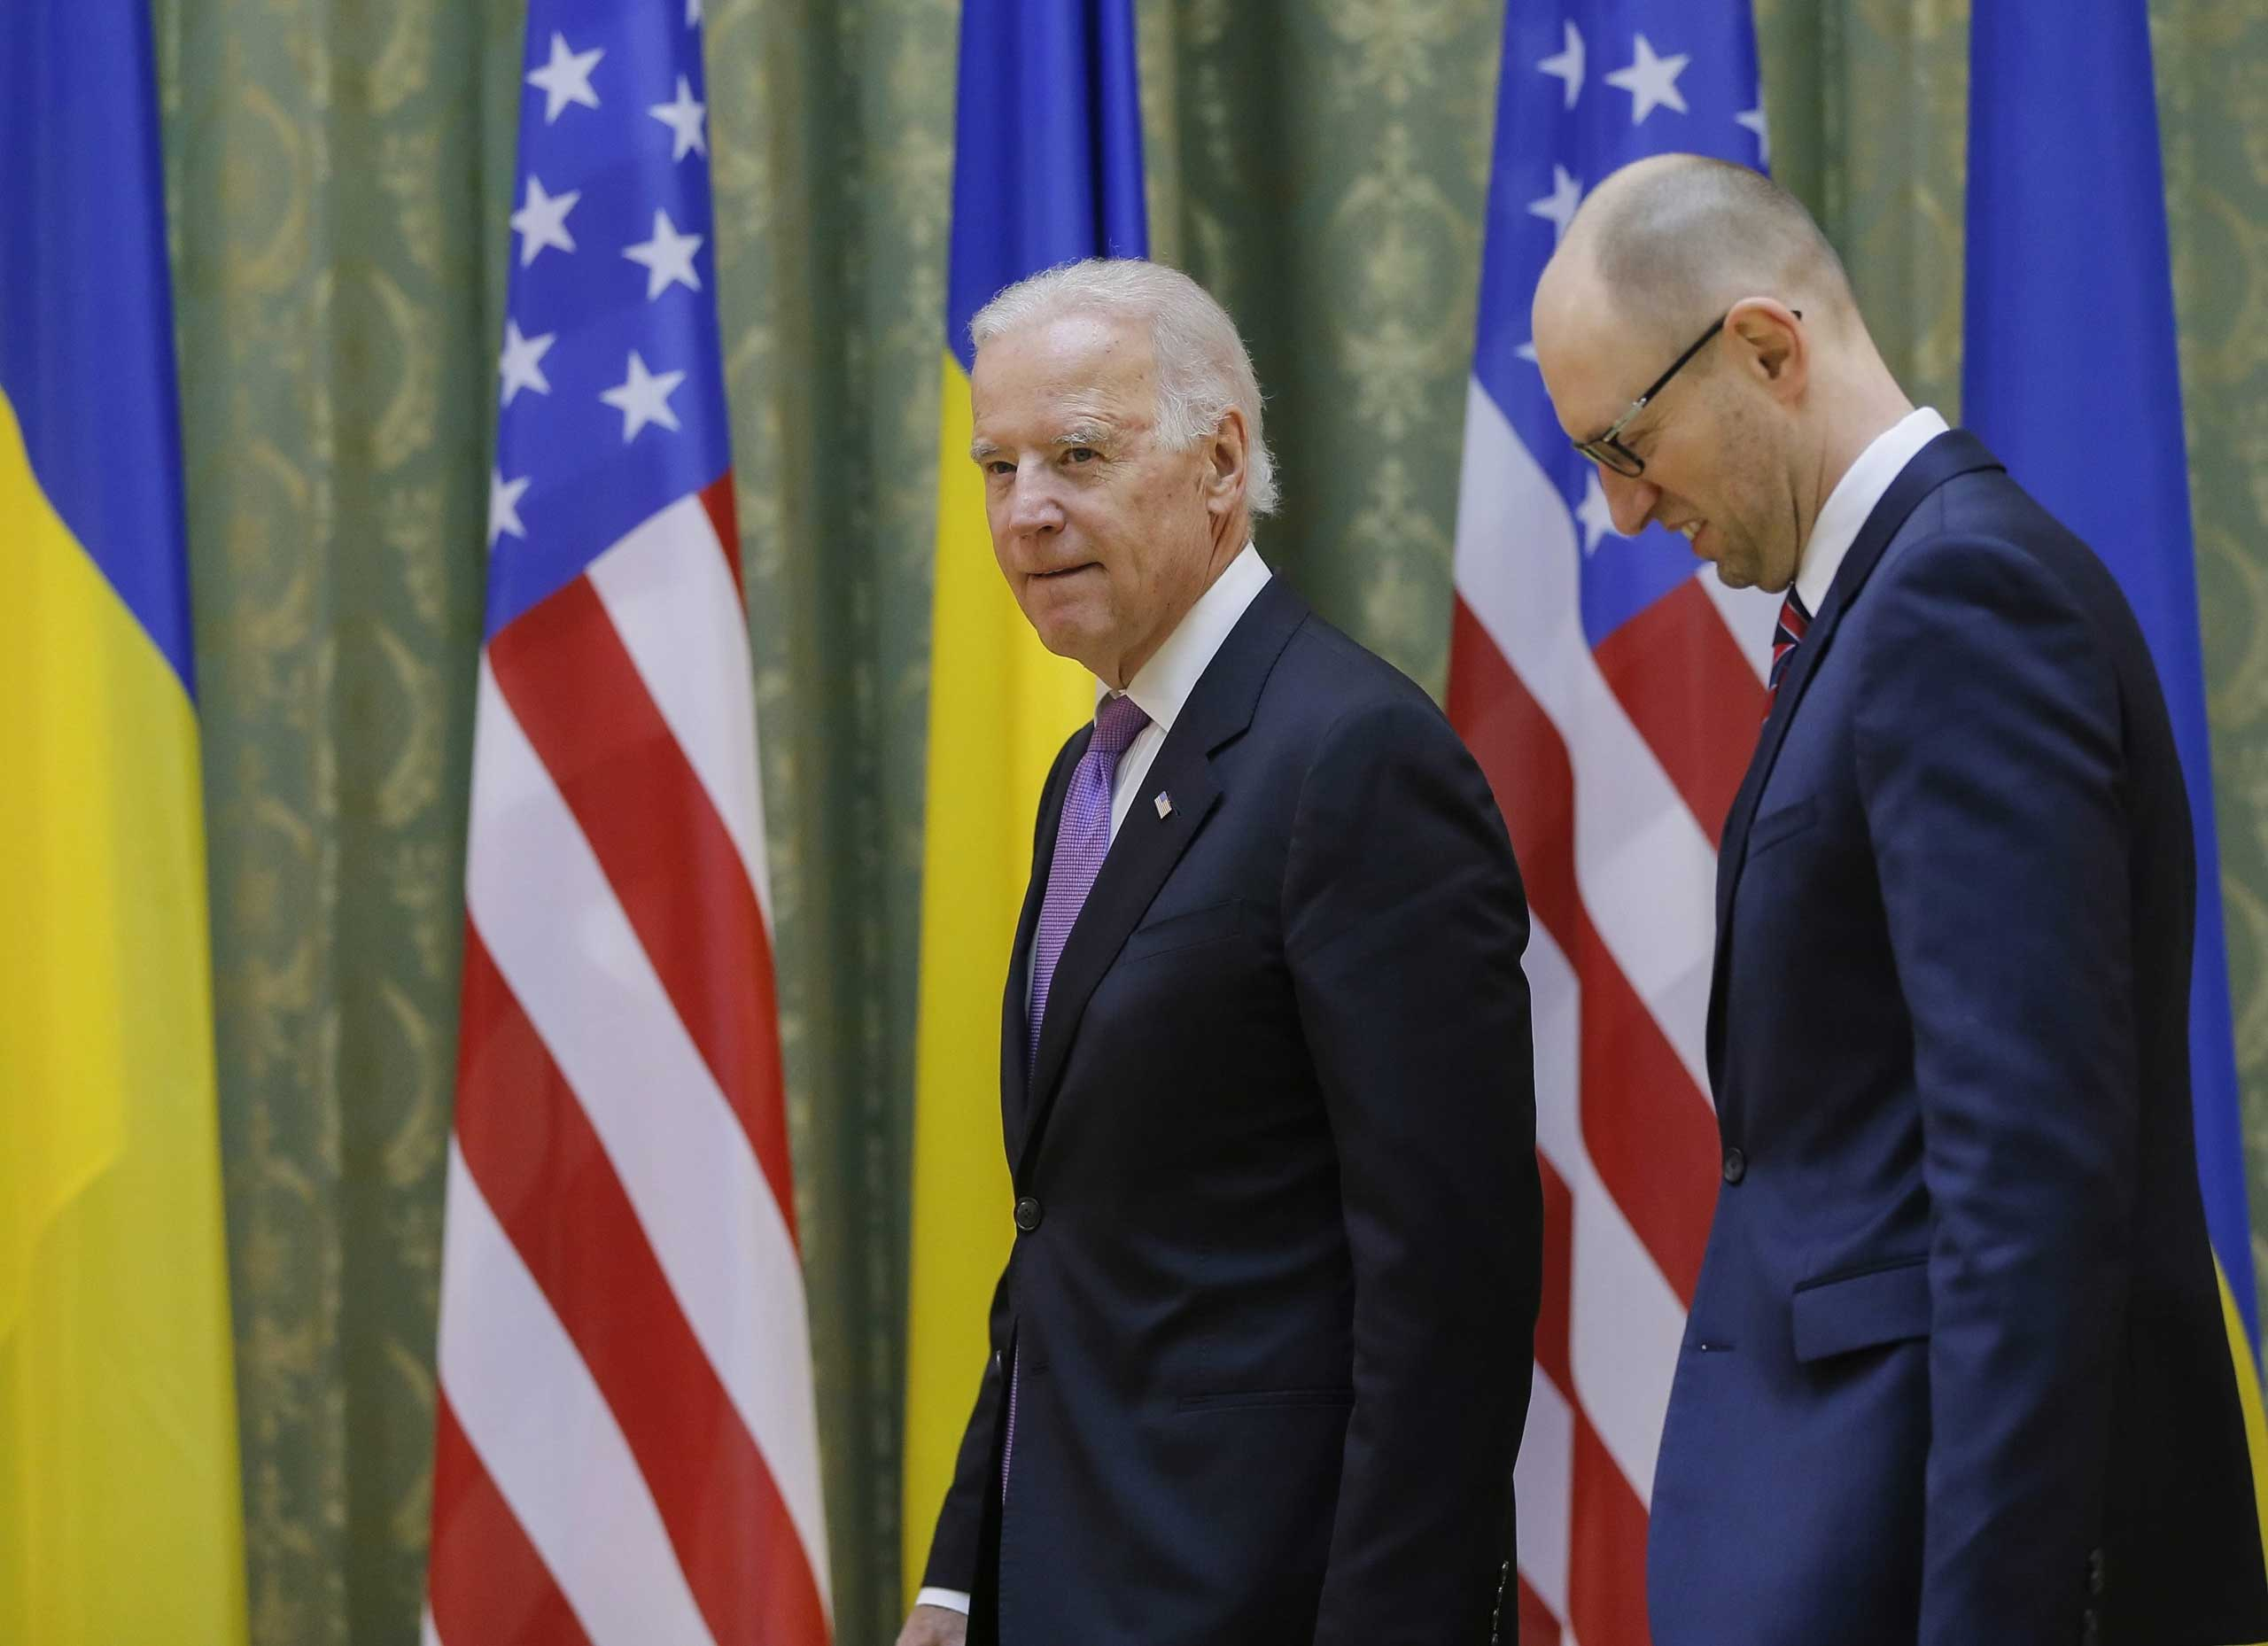 Vice President Joe Biden and Ukrainian Prime Minister Arseniy Yatsenyuk arrive for their meeting  in Kiev, Ukraine, 21 Nov. 21,2014.